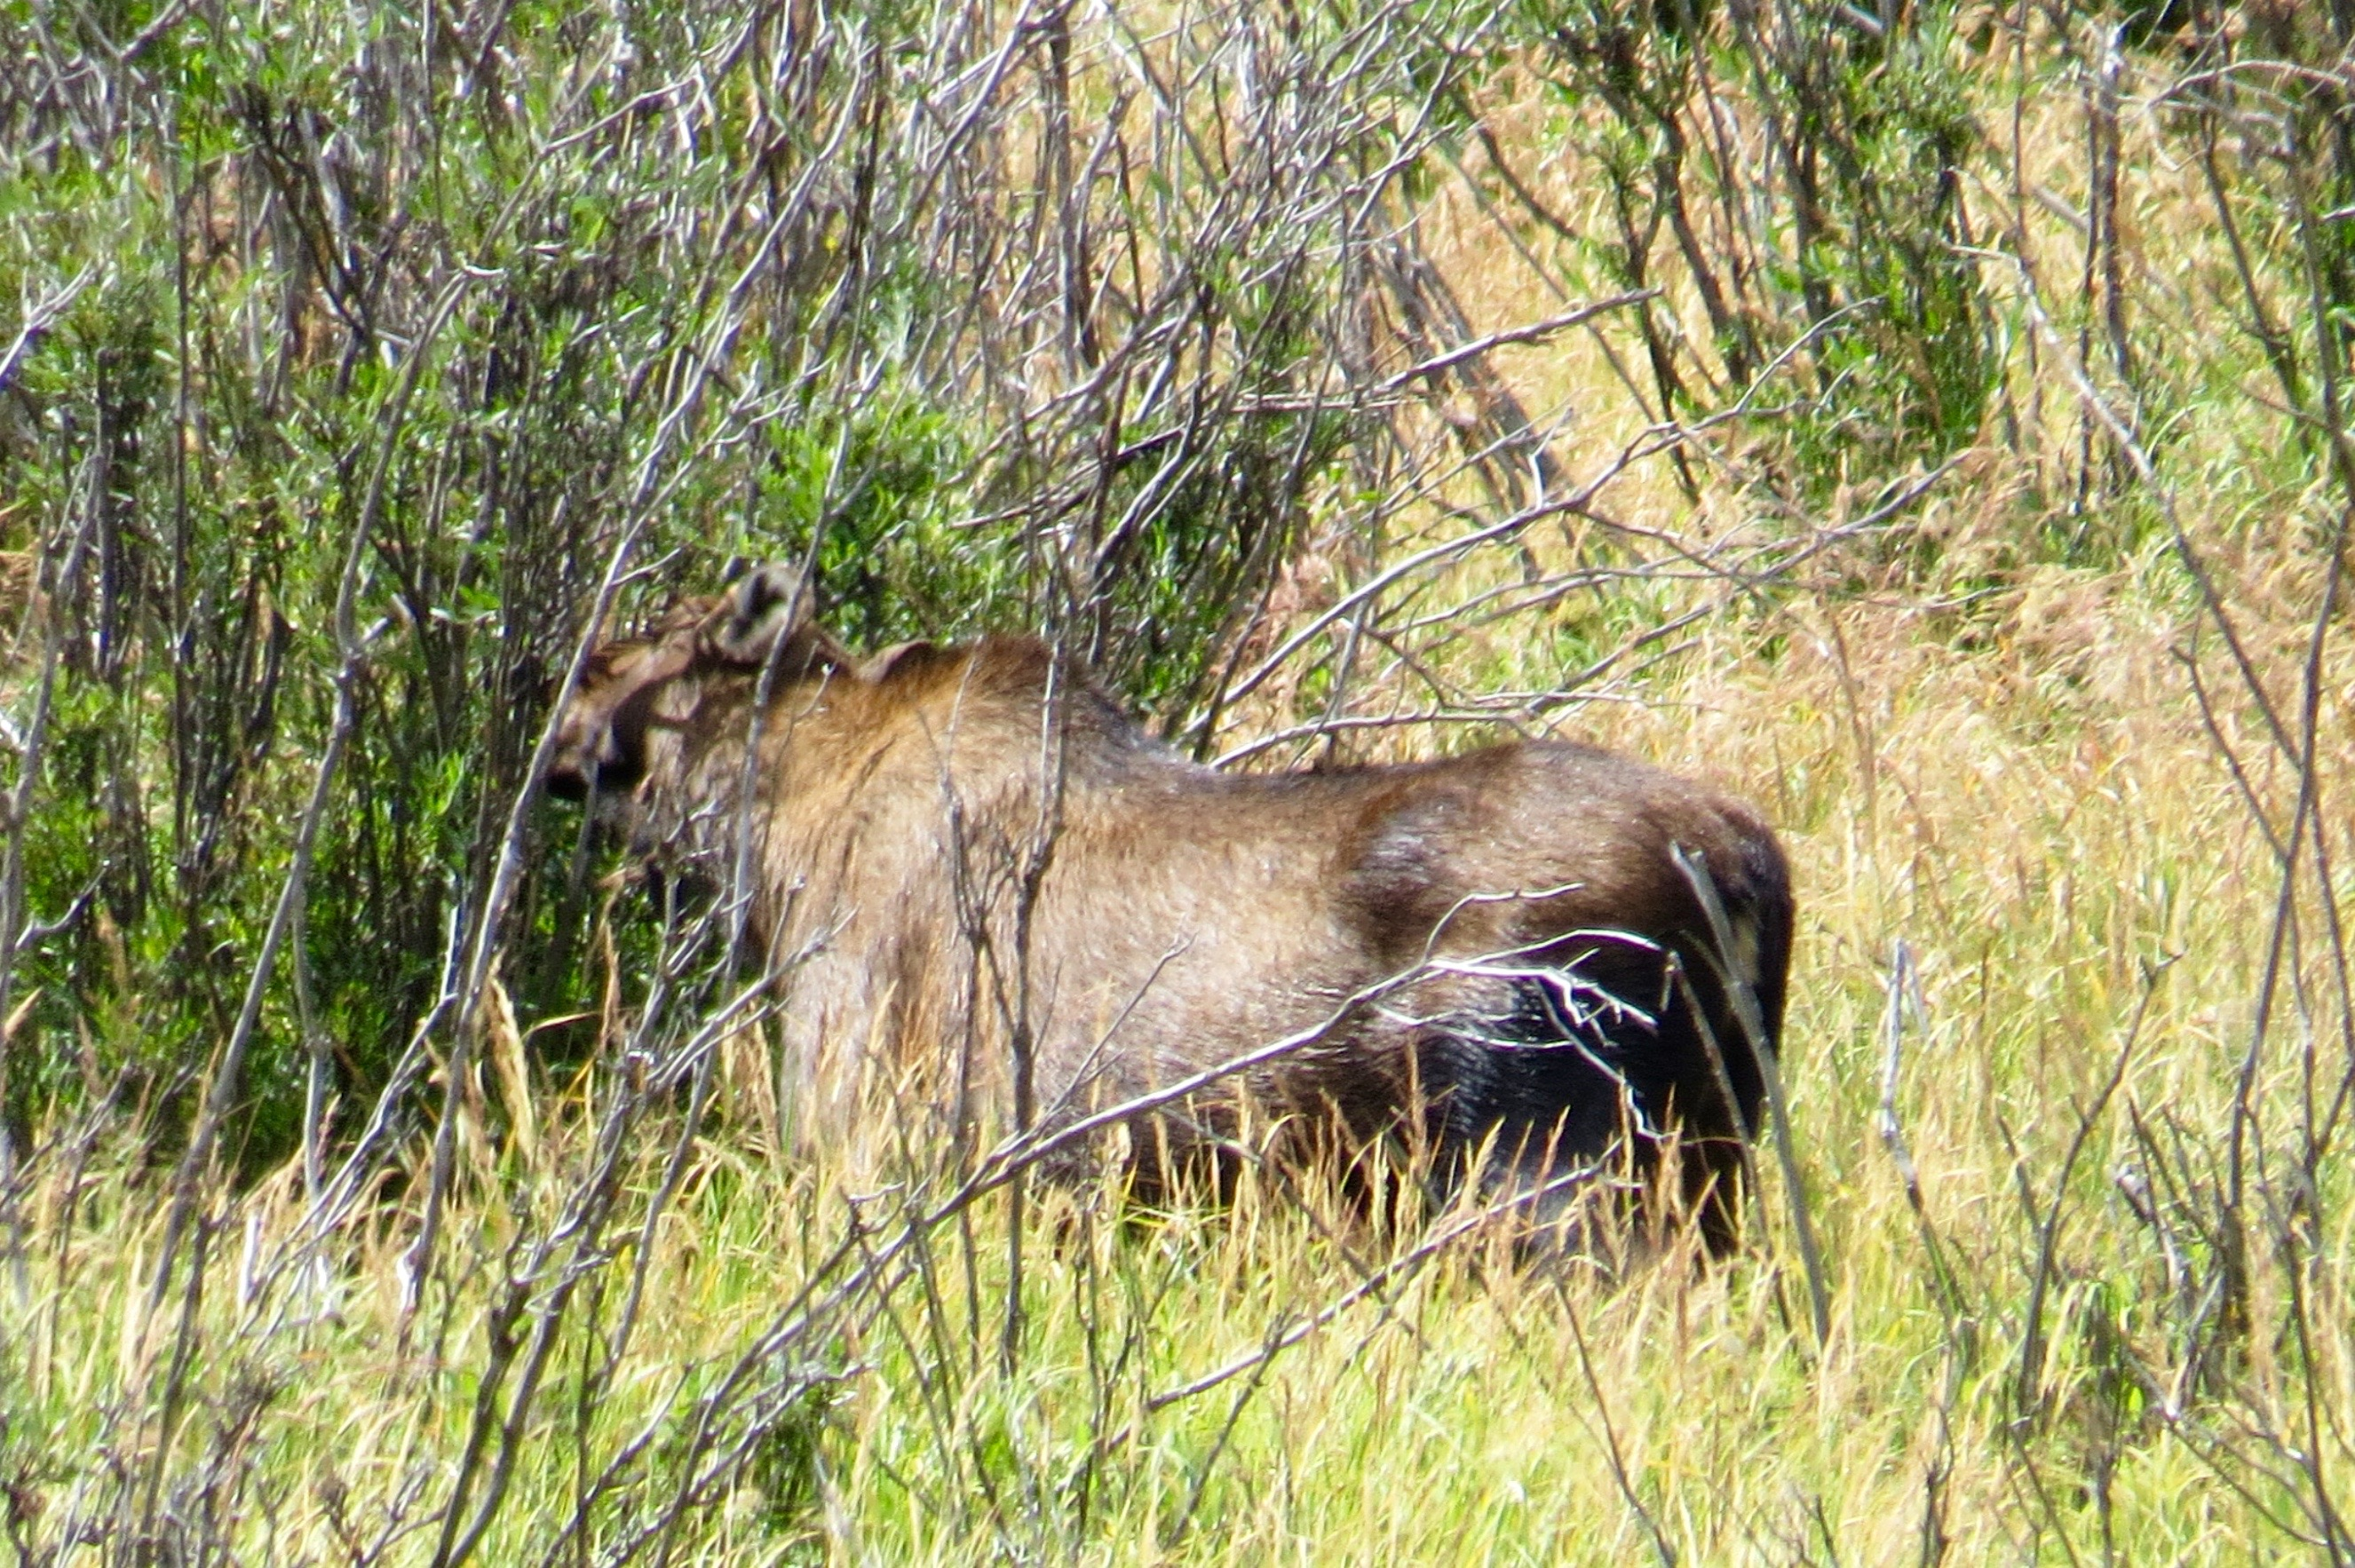 MOM MOOSE - SHE CAN WEIGH BETWEEN 1100 TO 1200 POUNDS.